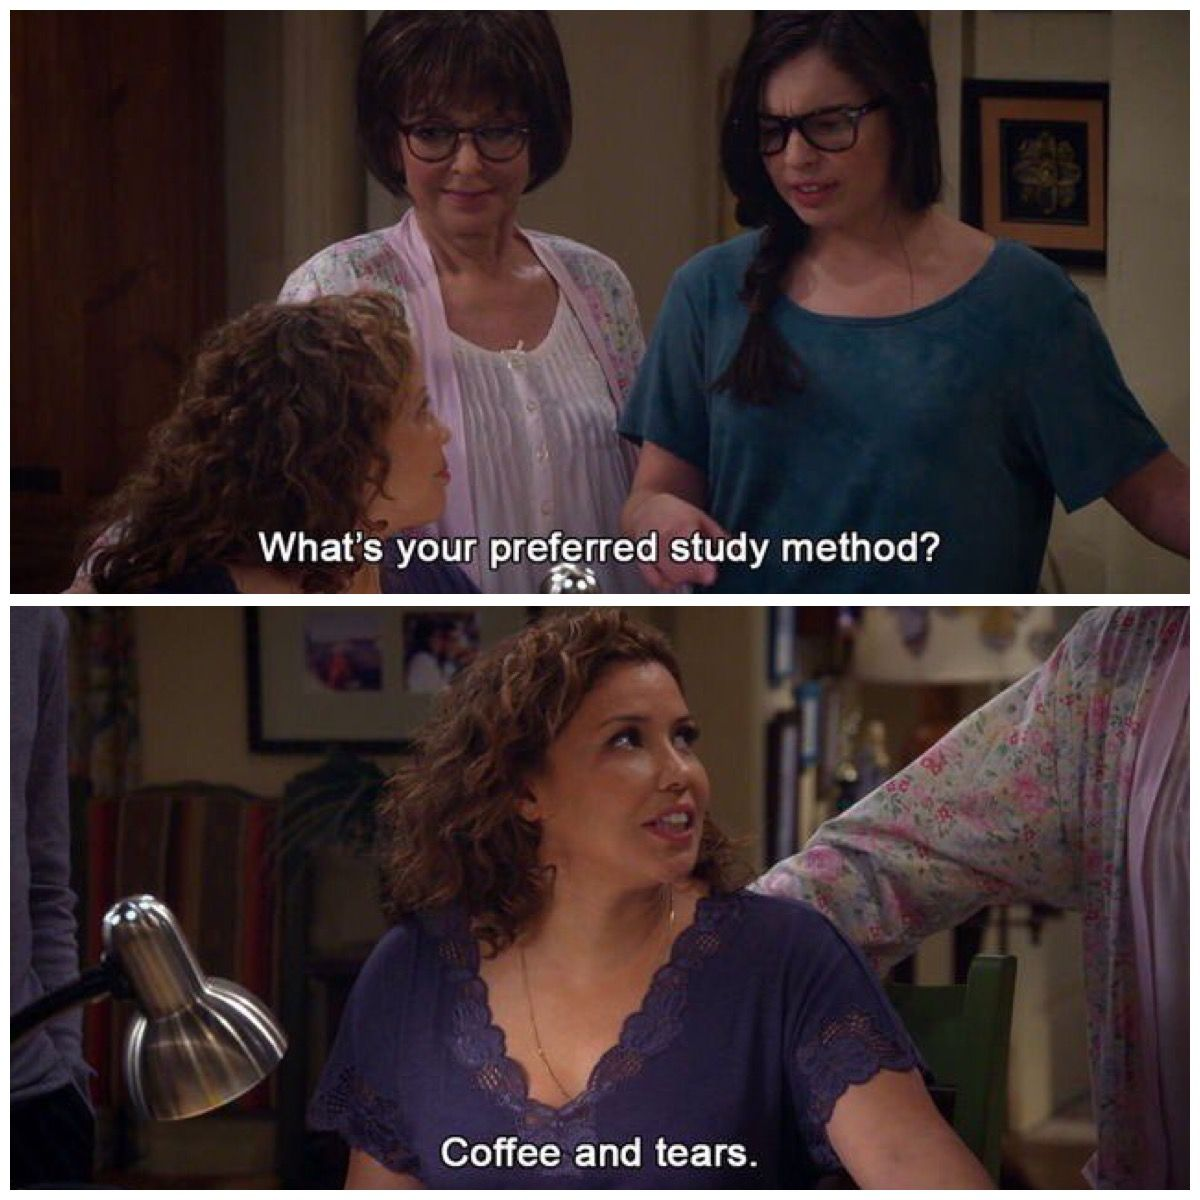 One day at a timeseason 2 One Day at a Time in 2019